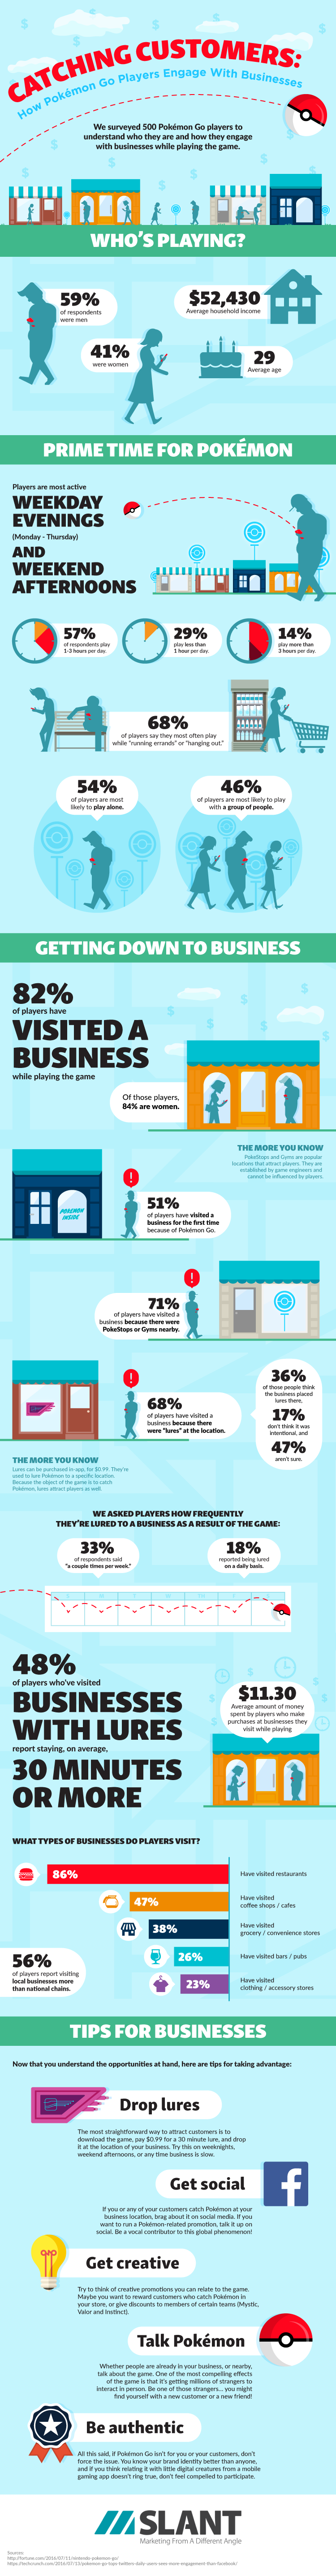 Businesses Are Literally Luring In New Customers Using Pokemon Go for Business Marketing (INFOGRAPHIC)